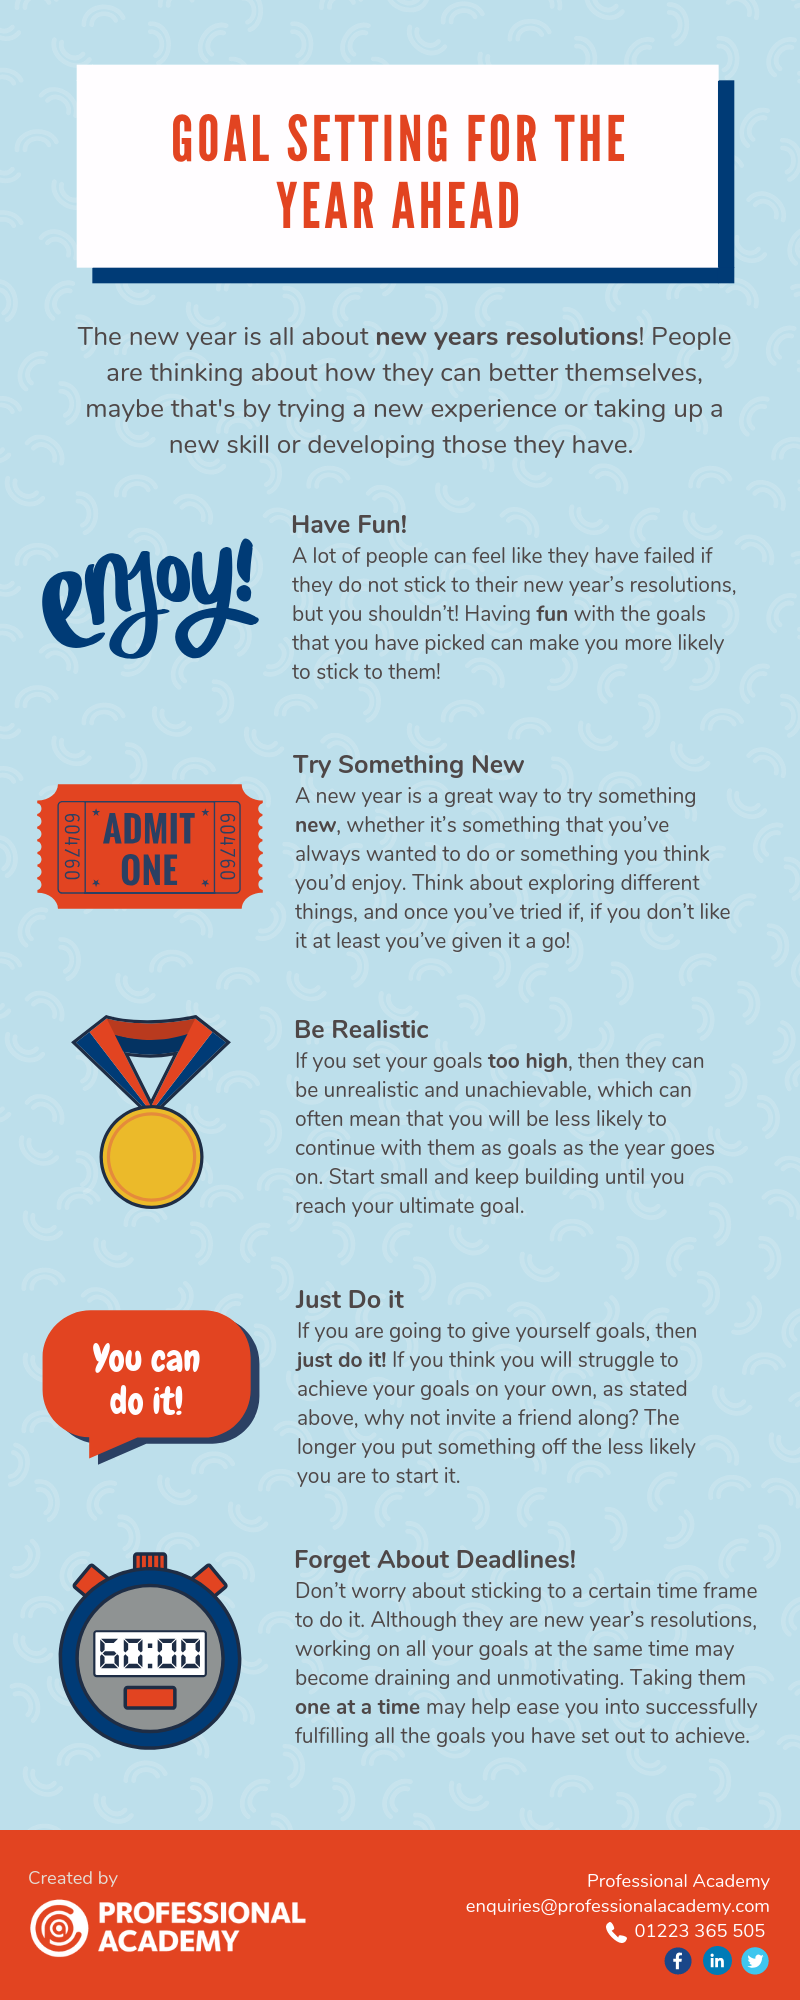 Goal Setting for the Year Ahead Infographic